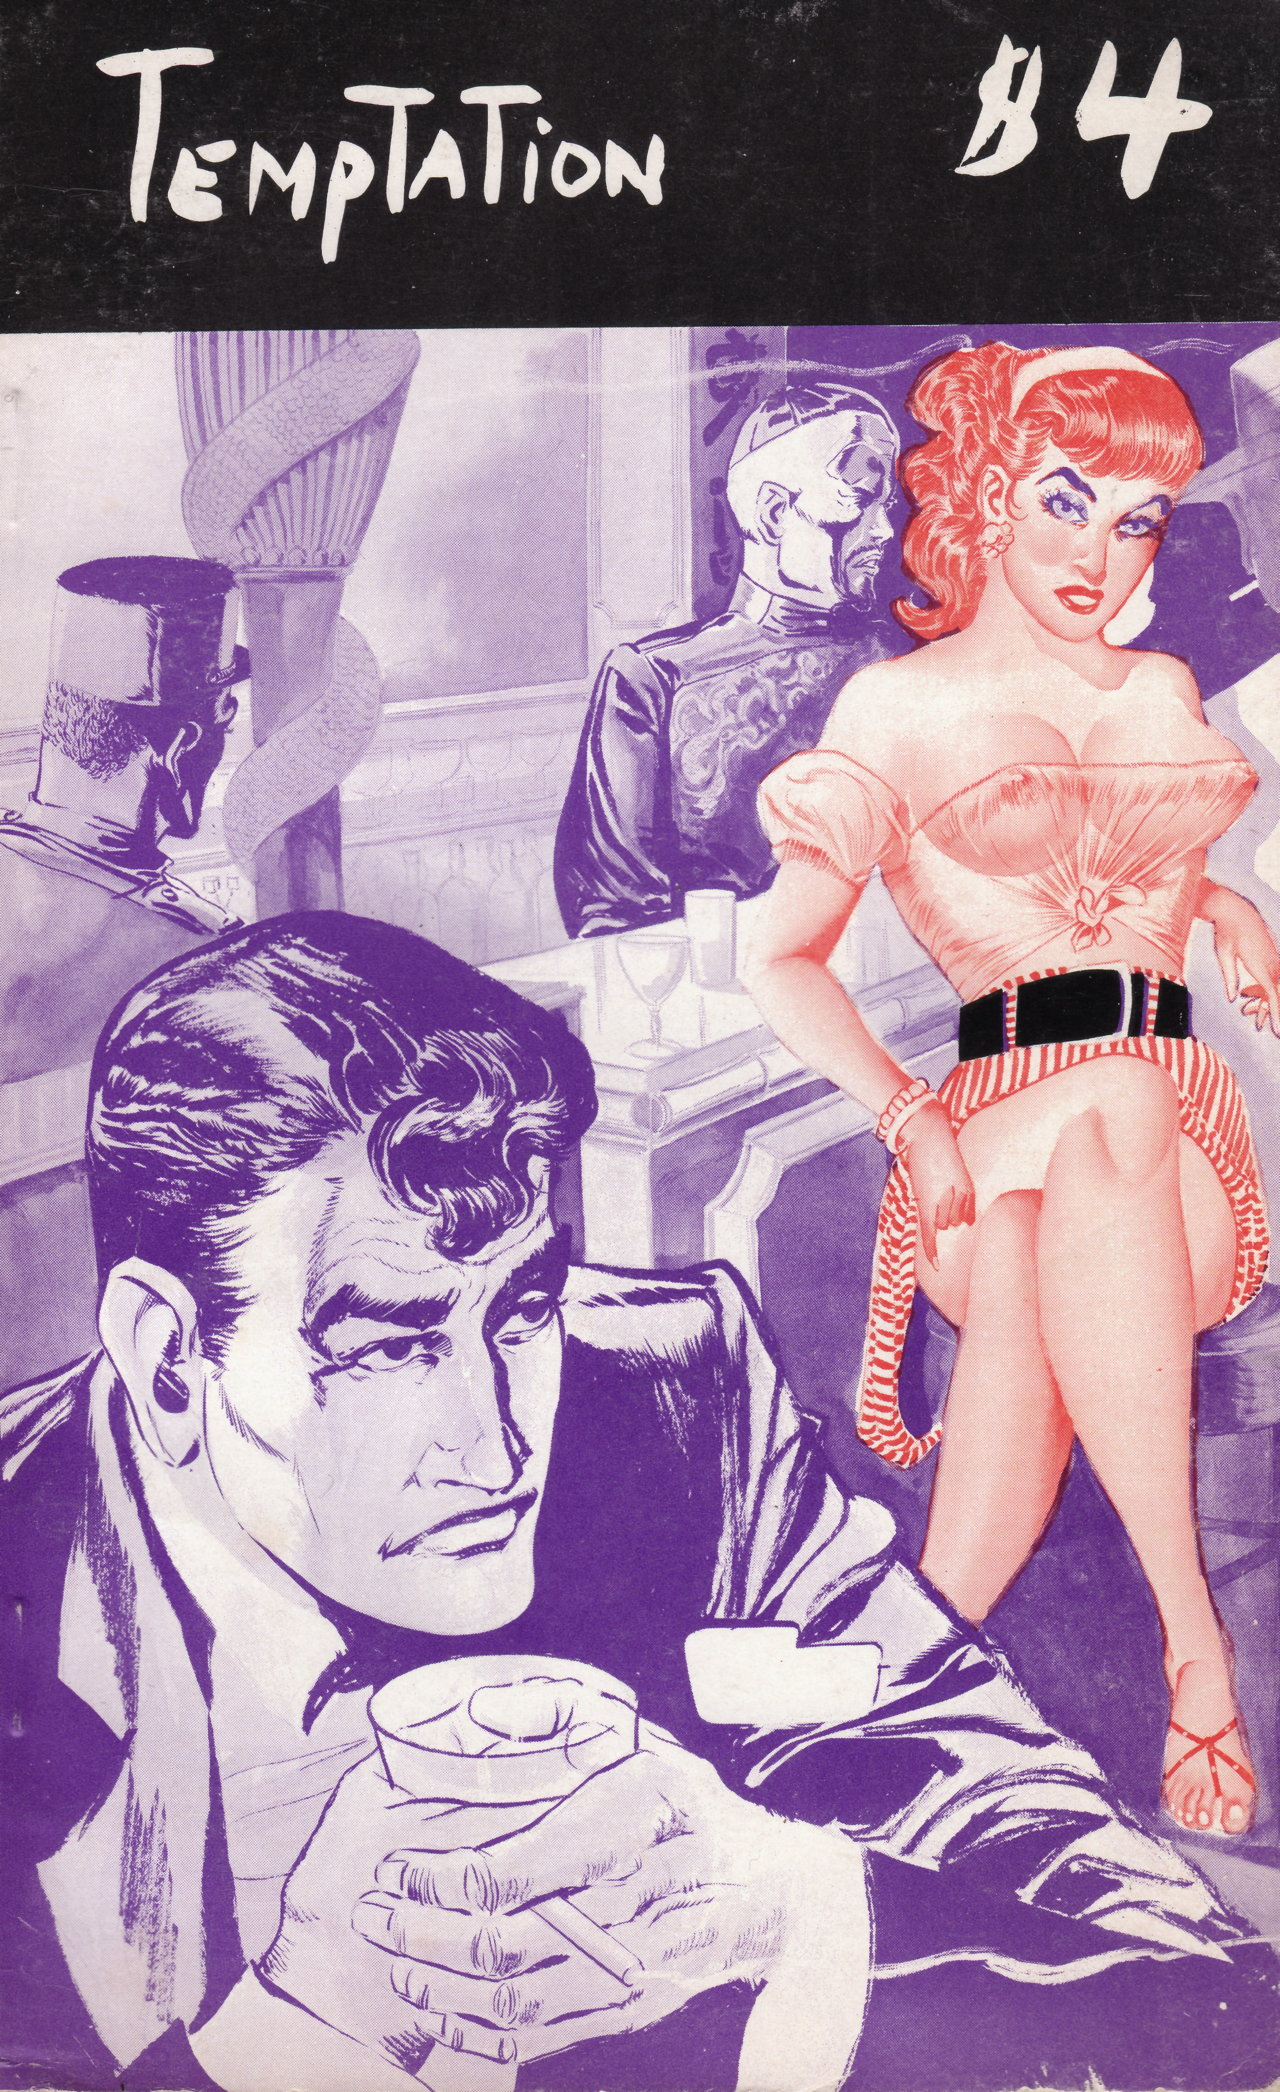 Eugene Bilbrew, cover of 'Temptation' by Justin Kent (c. 1955) (all images courtesy the author)